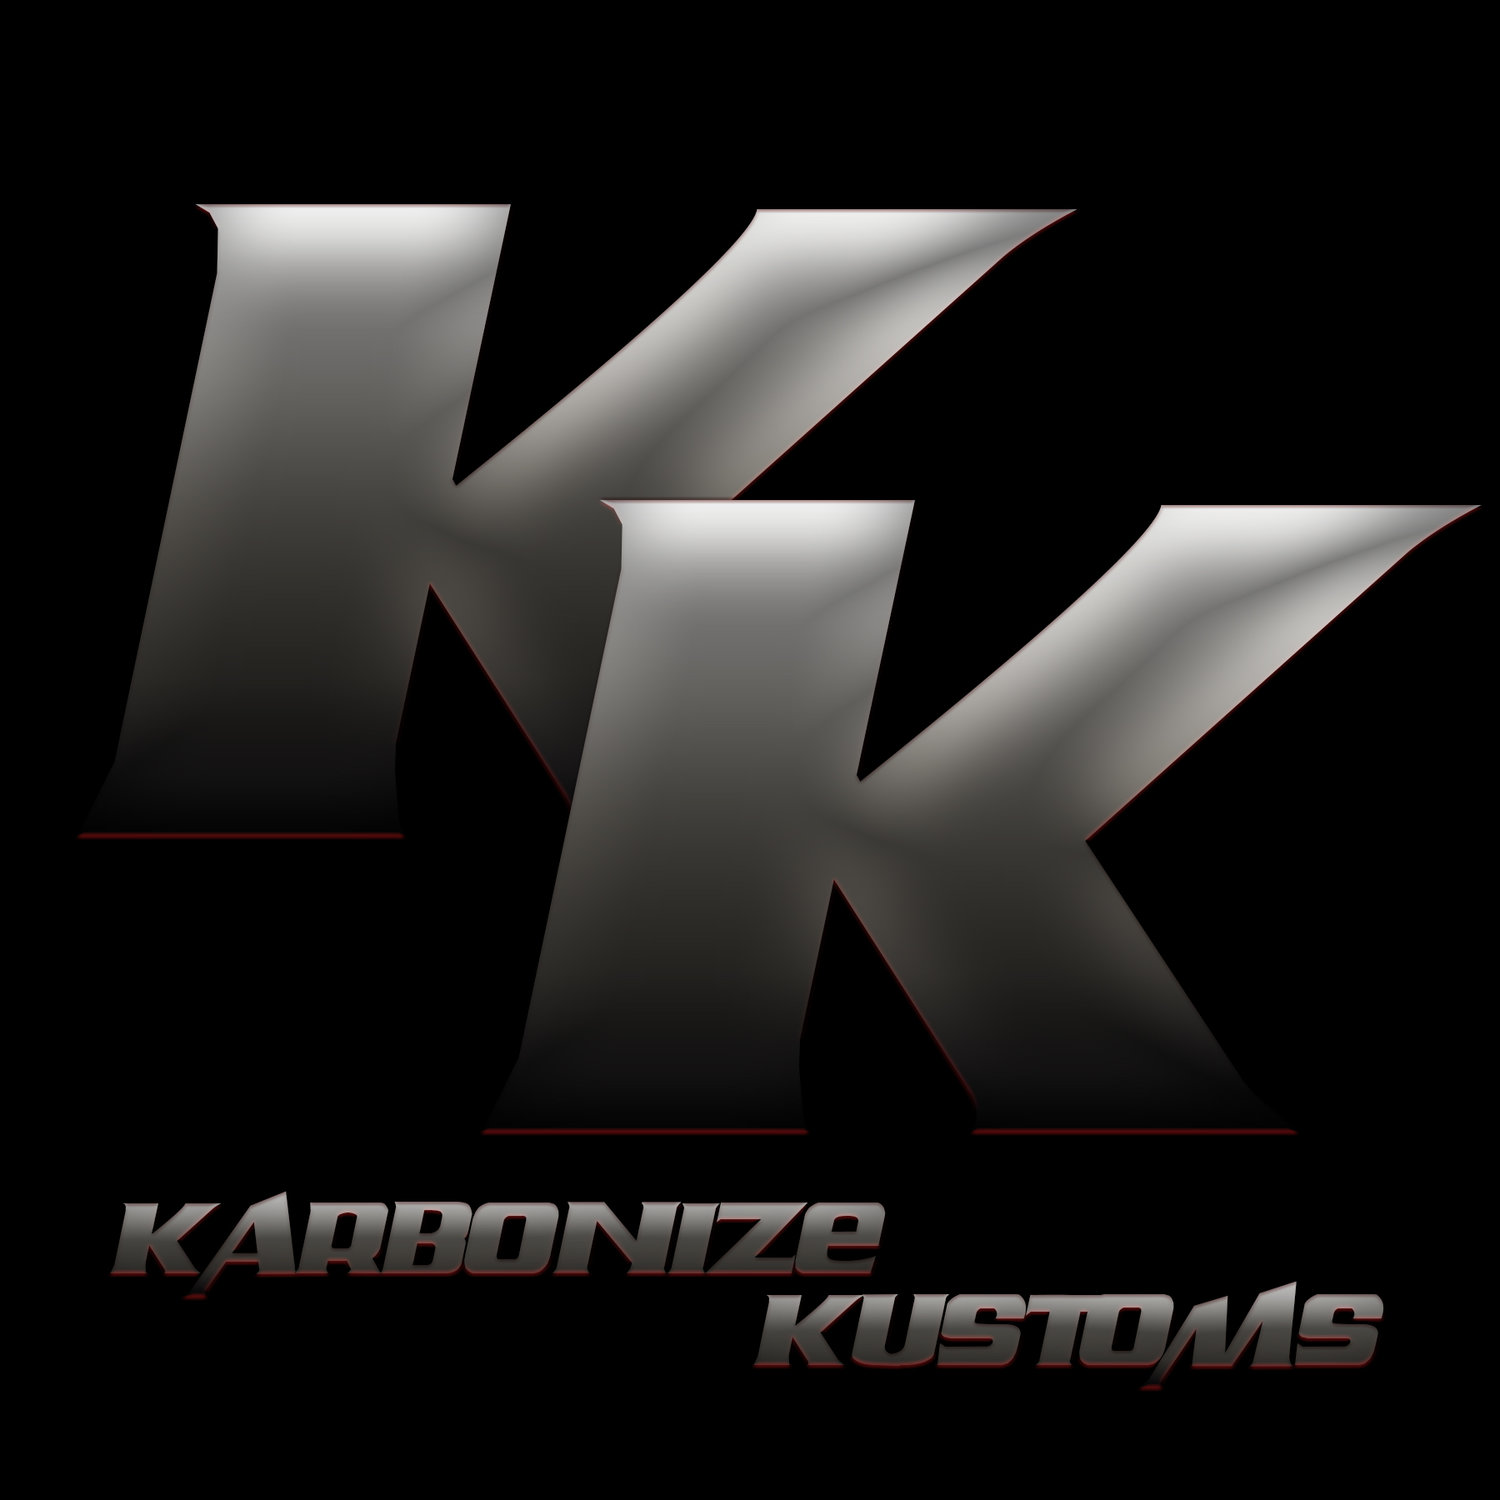 Karbonize Kustoms